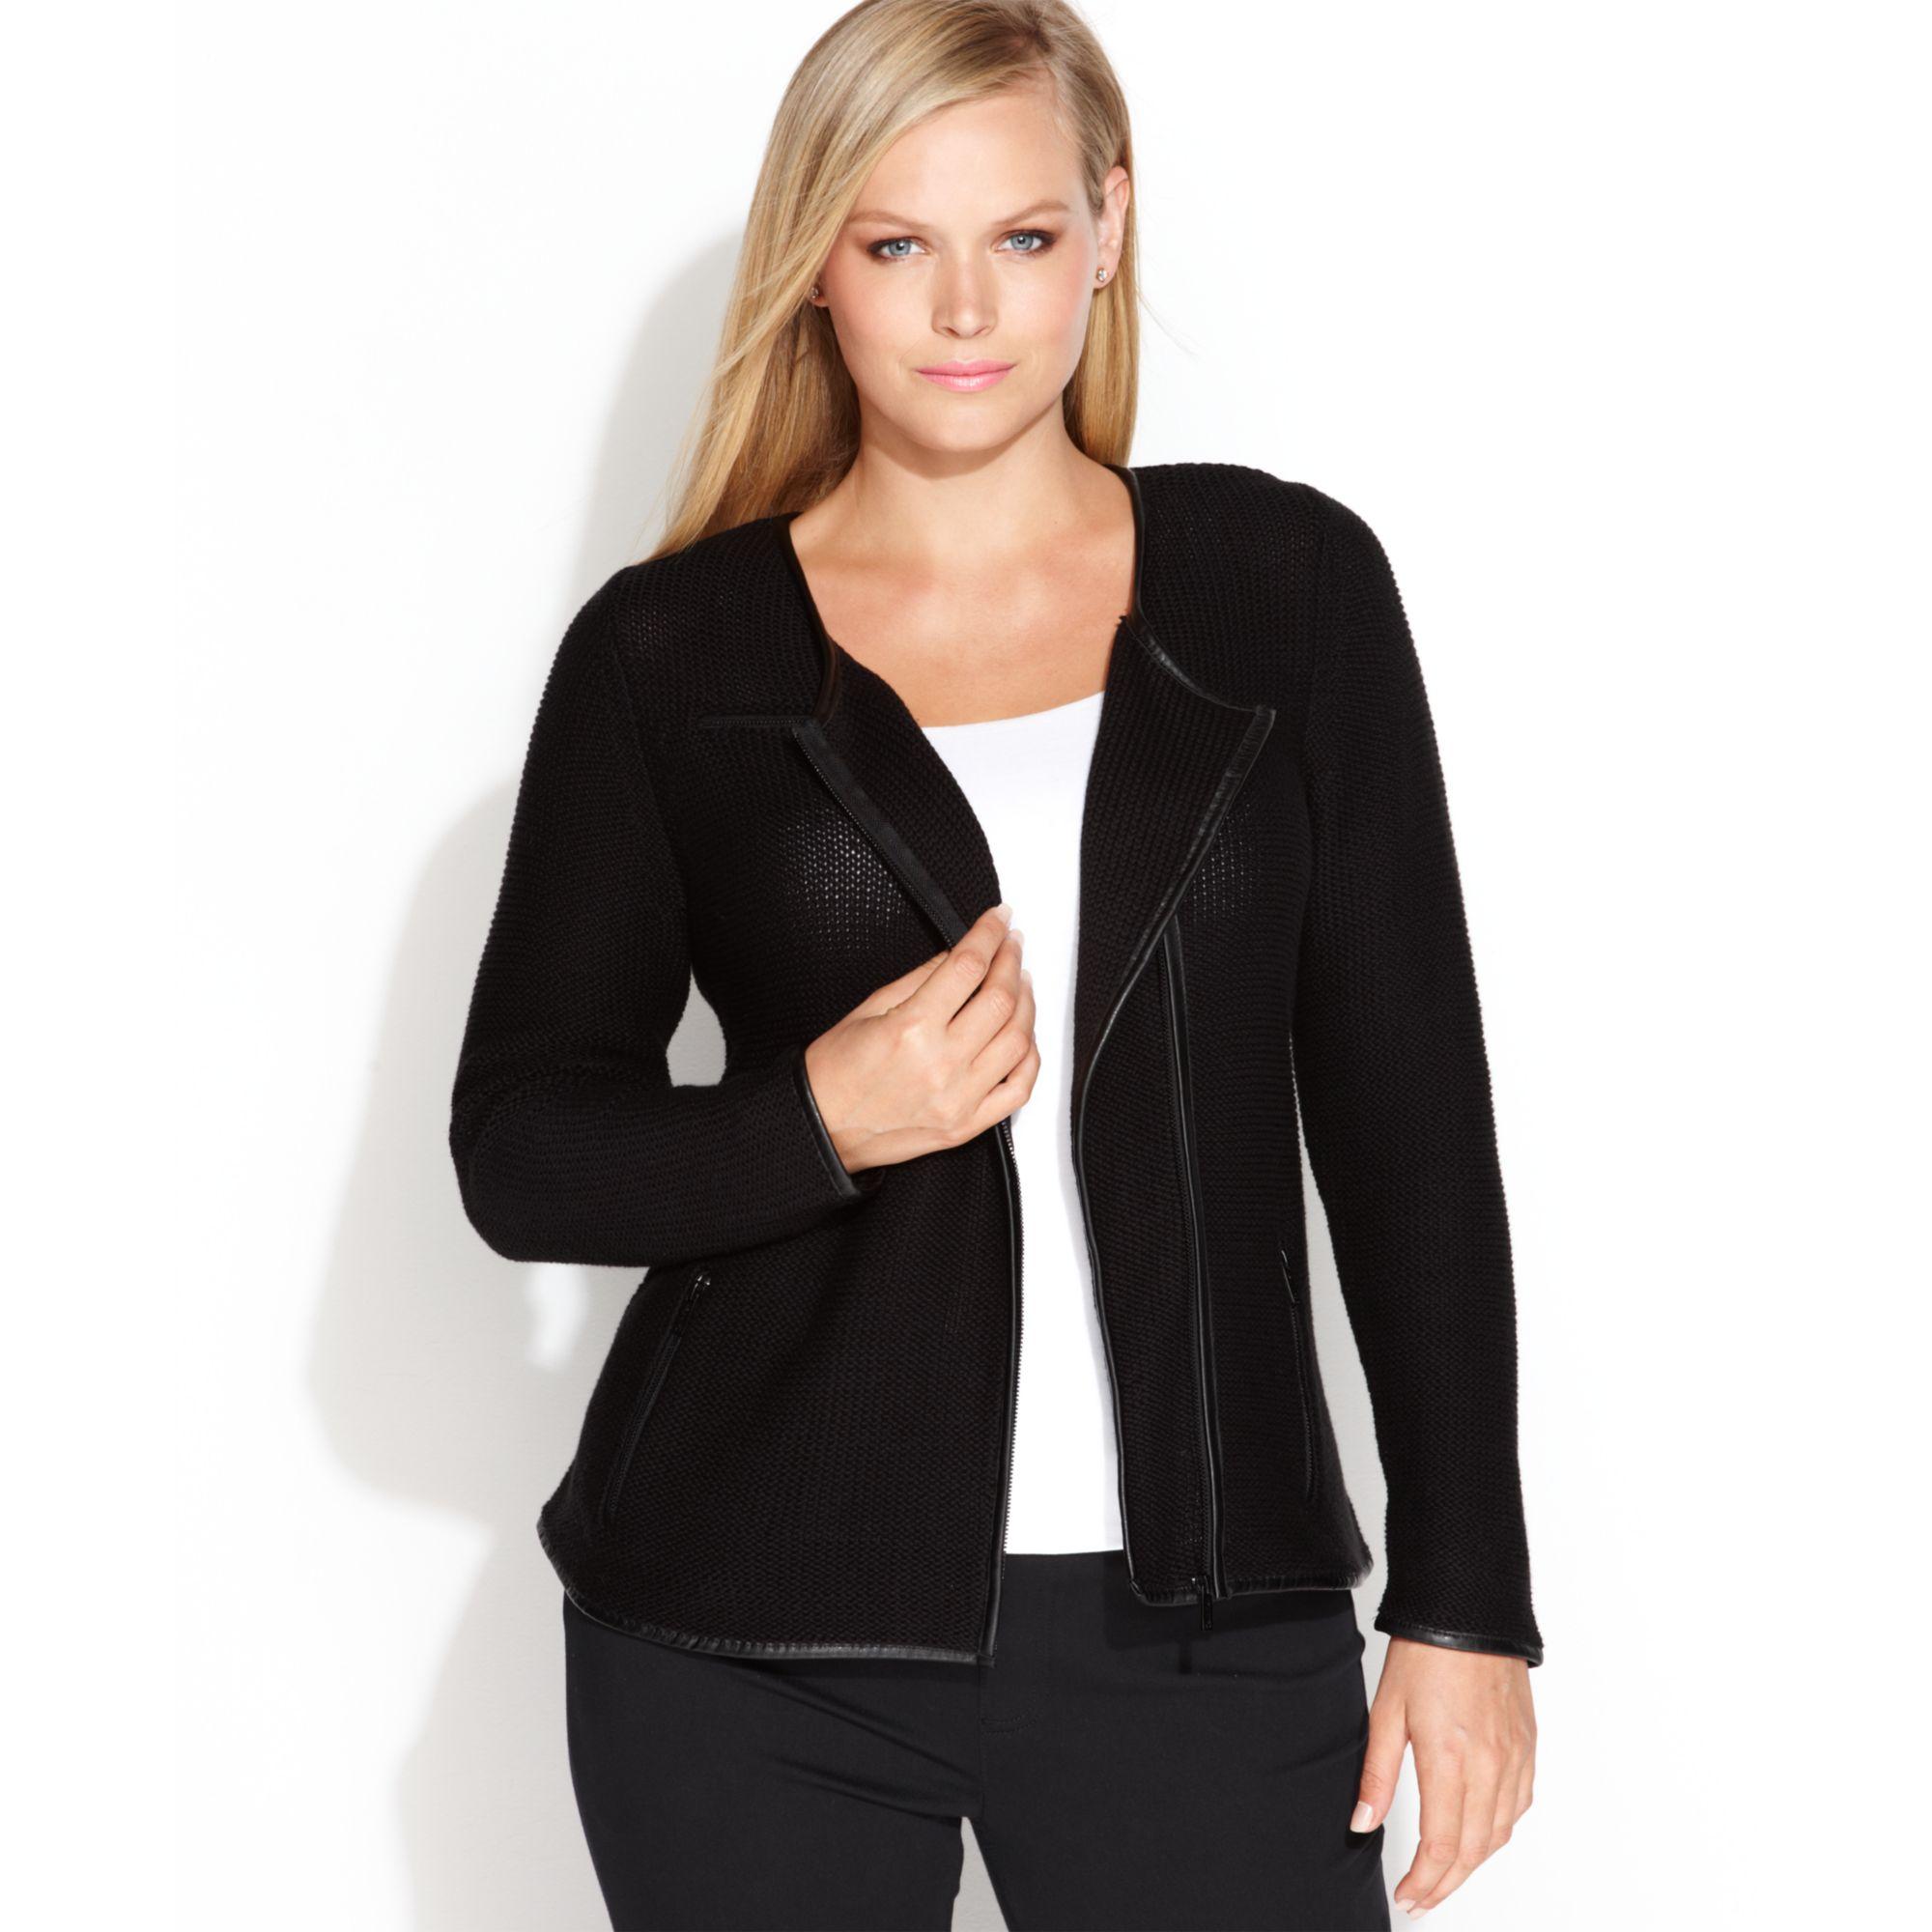 Plus Size Black Sweater Jackets - Best Jacket 2017